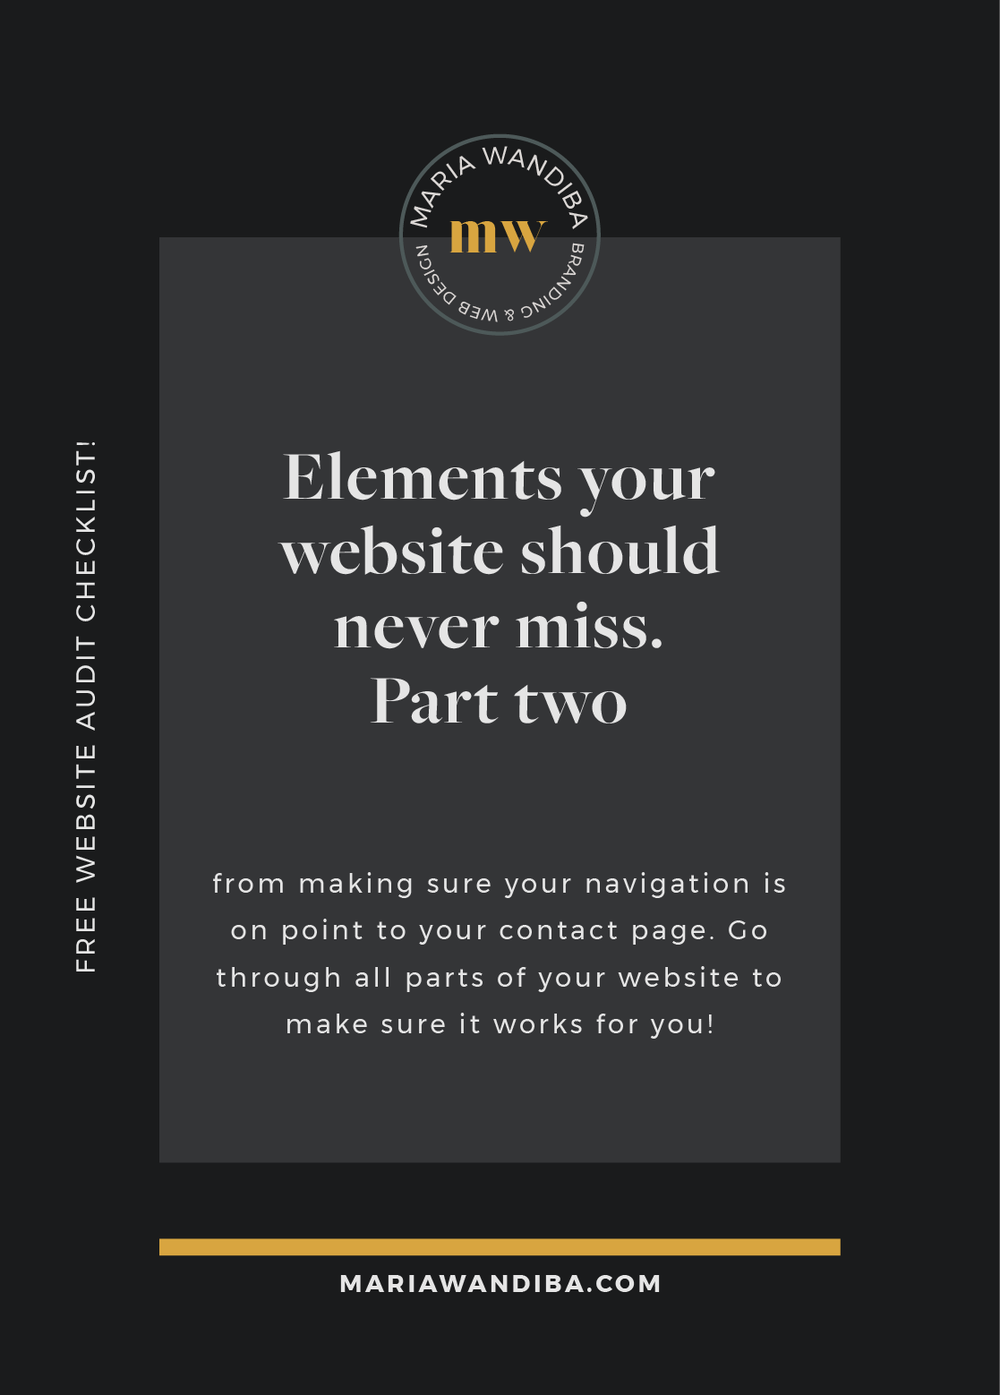 elements-your-website-is-missing-part-two.png